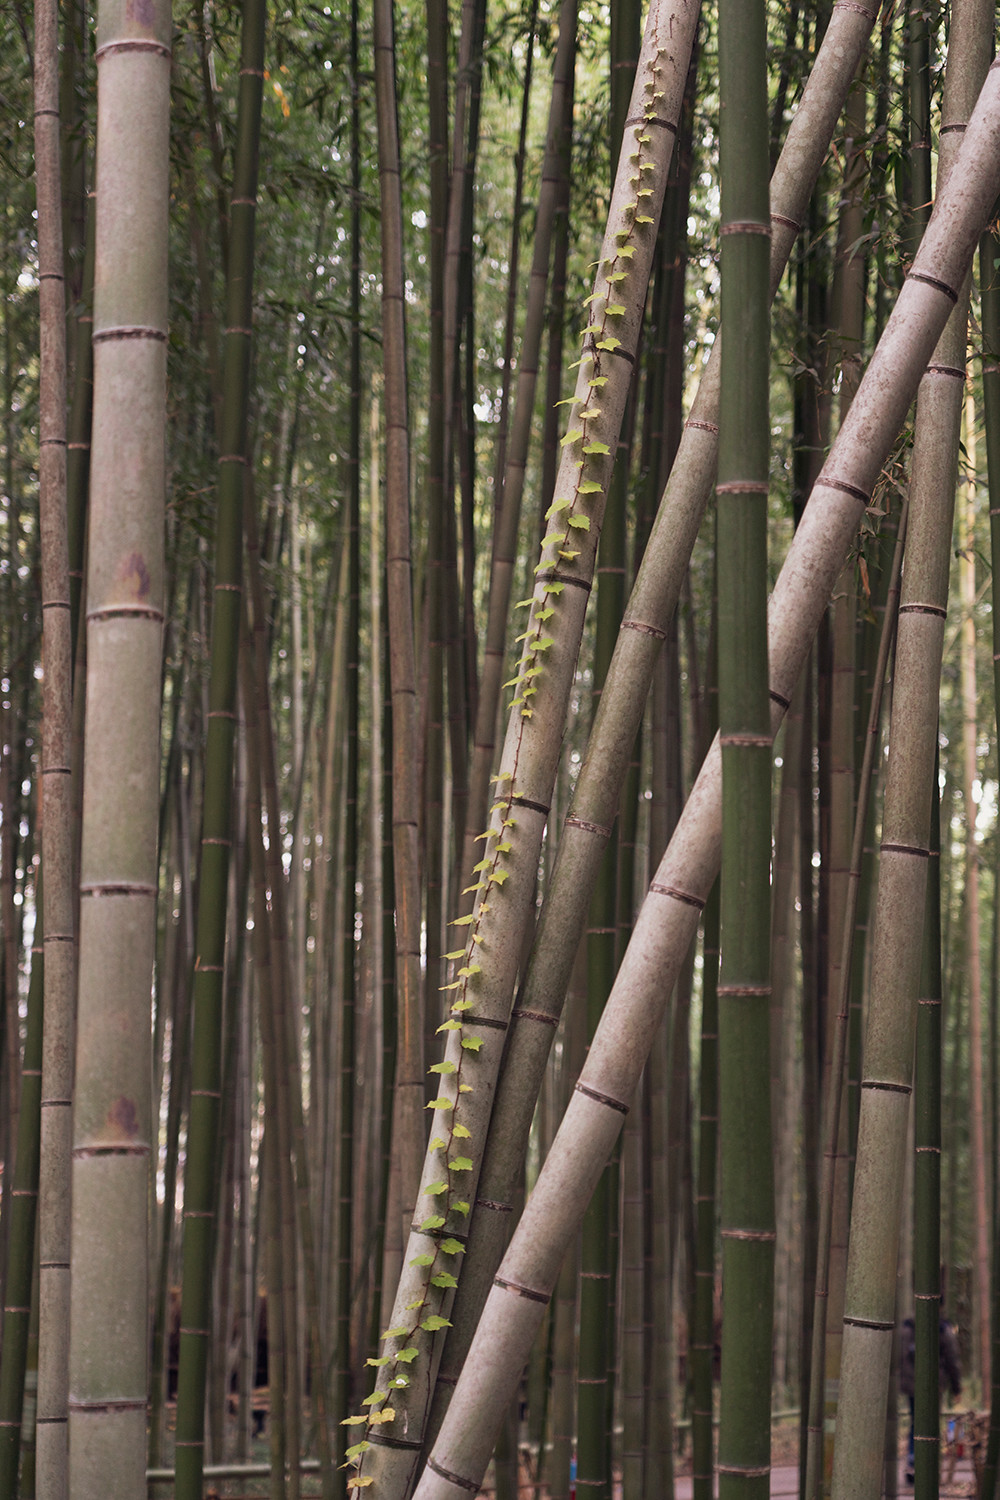 10kyoto-arashiyama-bambooforest-japan-landscape-travel